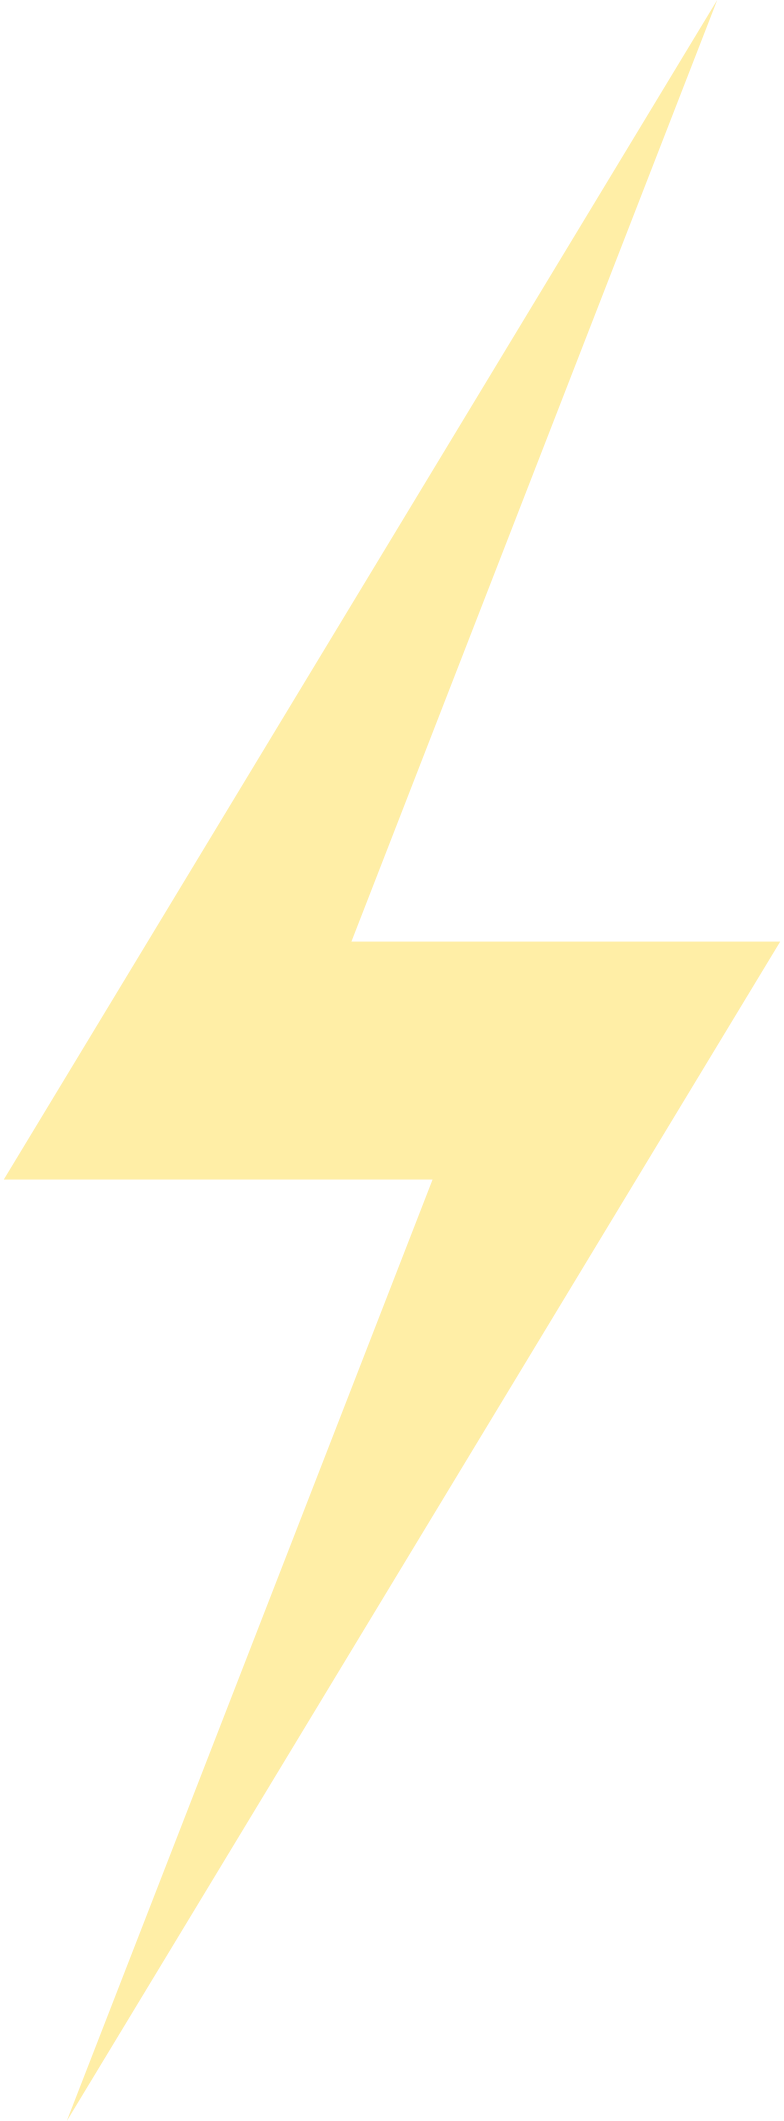 style lightning Vector images in PNG and SVG | Icons8 Illustrations